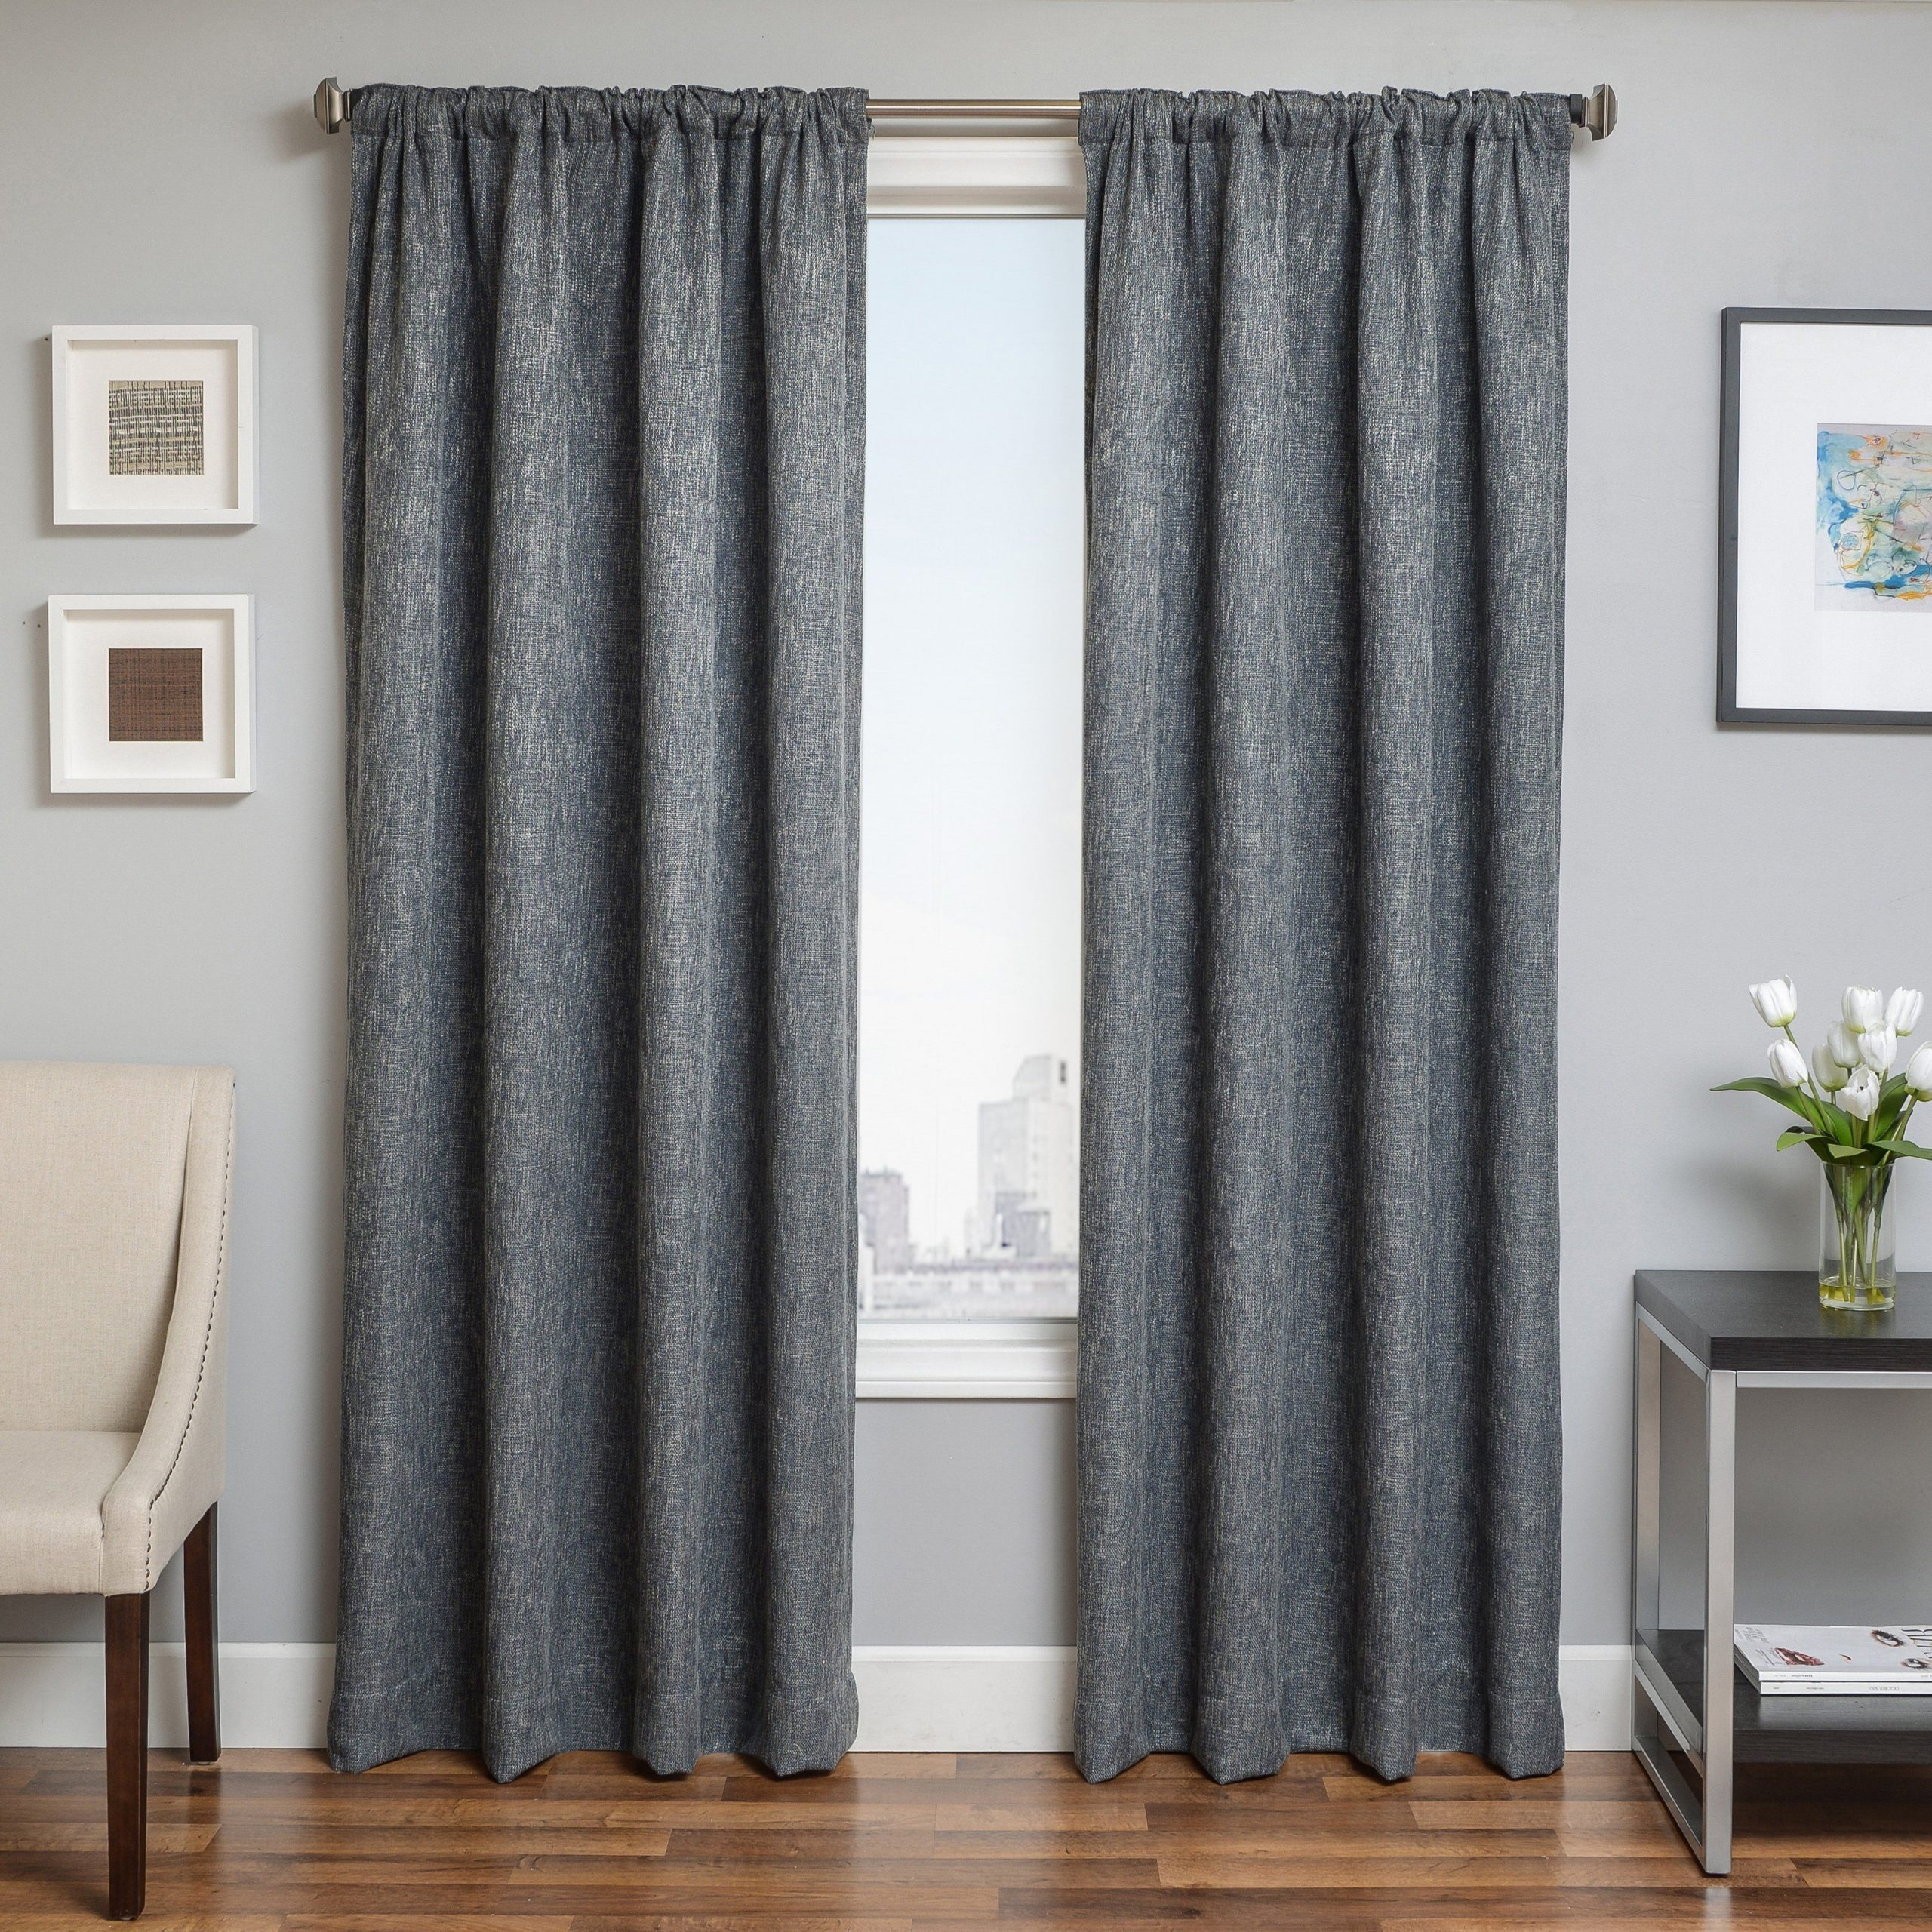 Most Recent Softline Beckman Tweed Rod Pocket Curtain Panel Spa (View 12 of 20)